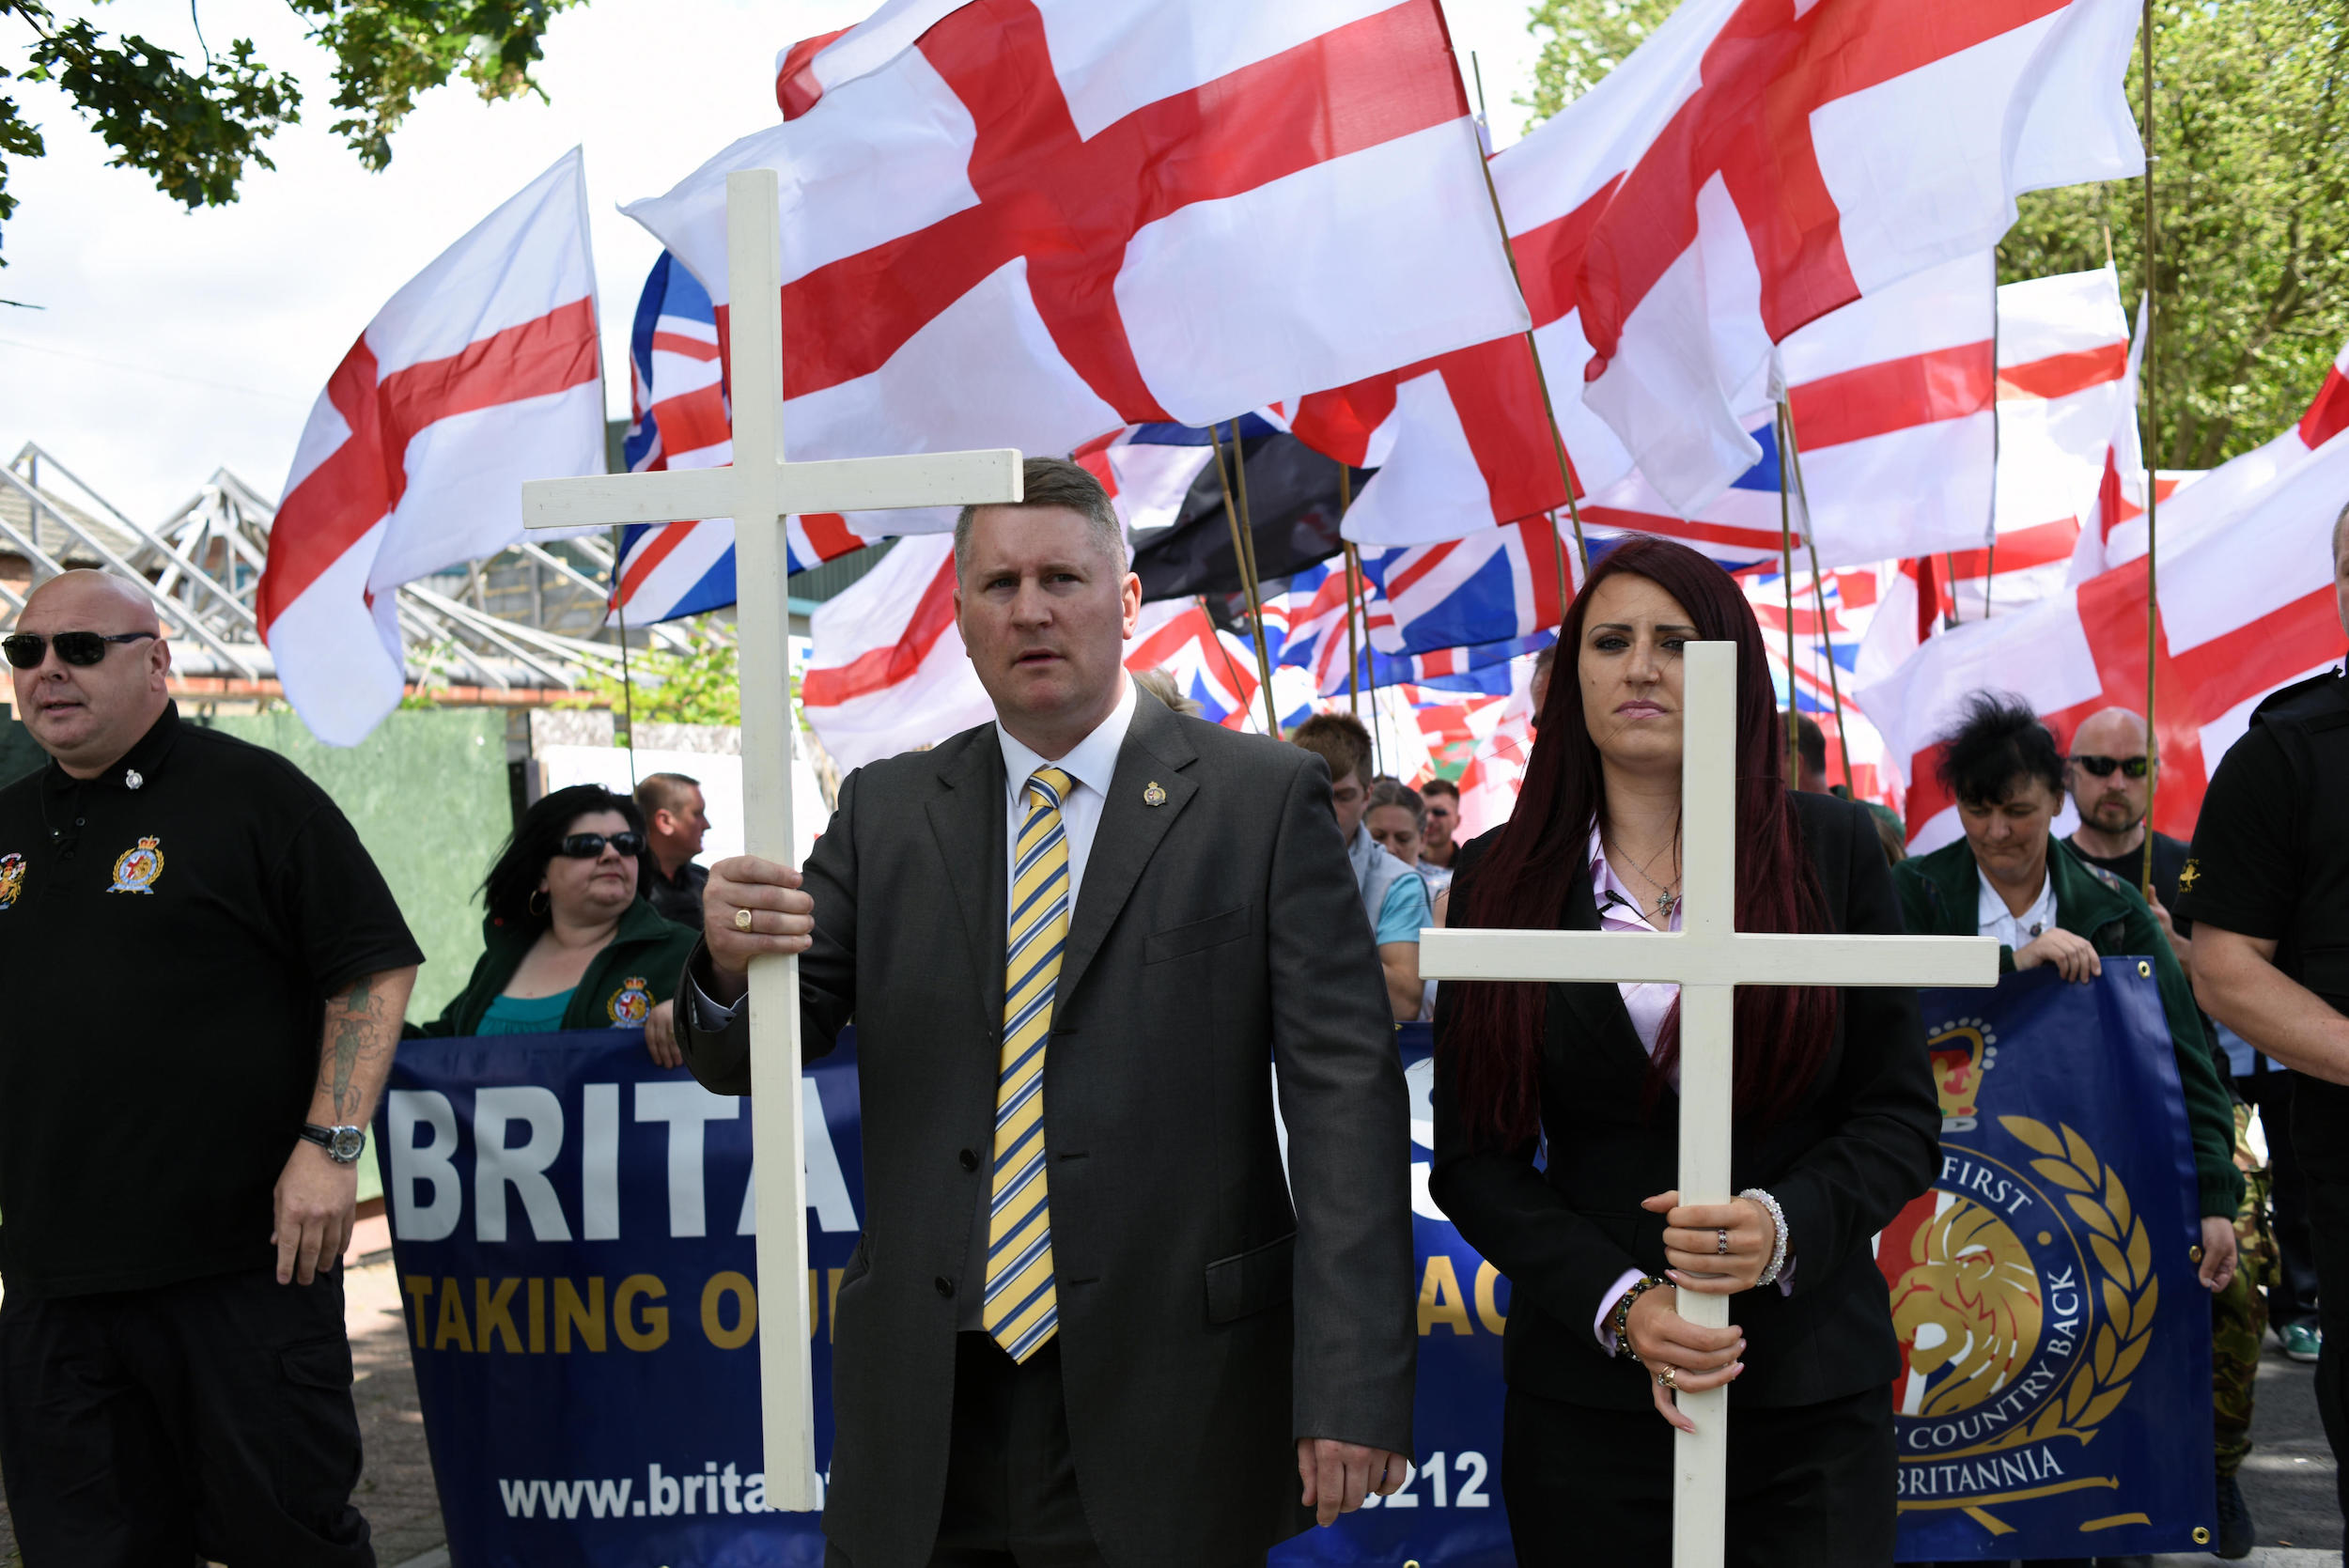 Revealed: How Britain First Disguised the Source of a £200,000 Donation - VICE